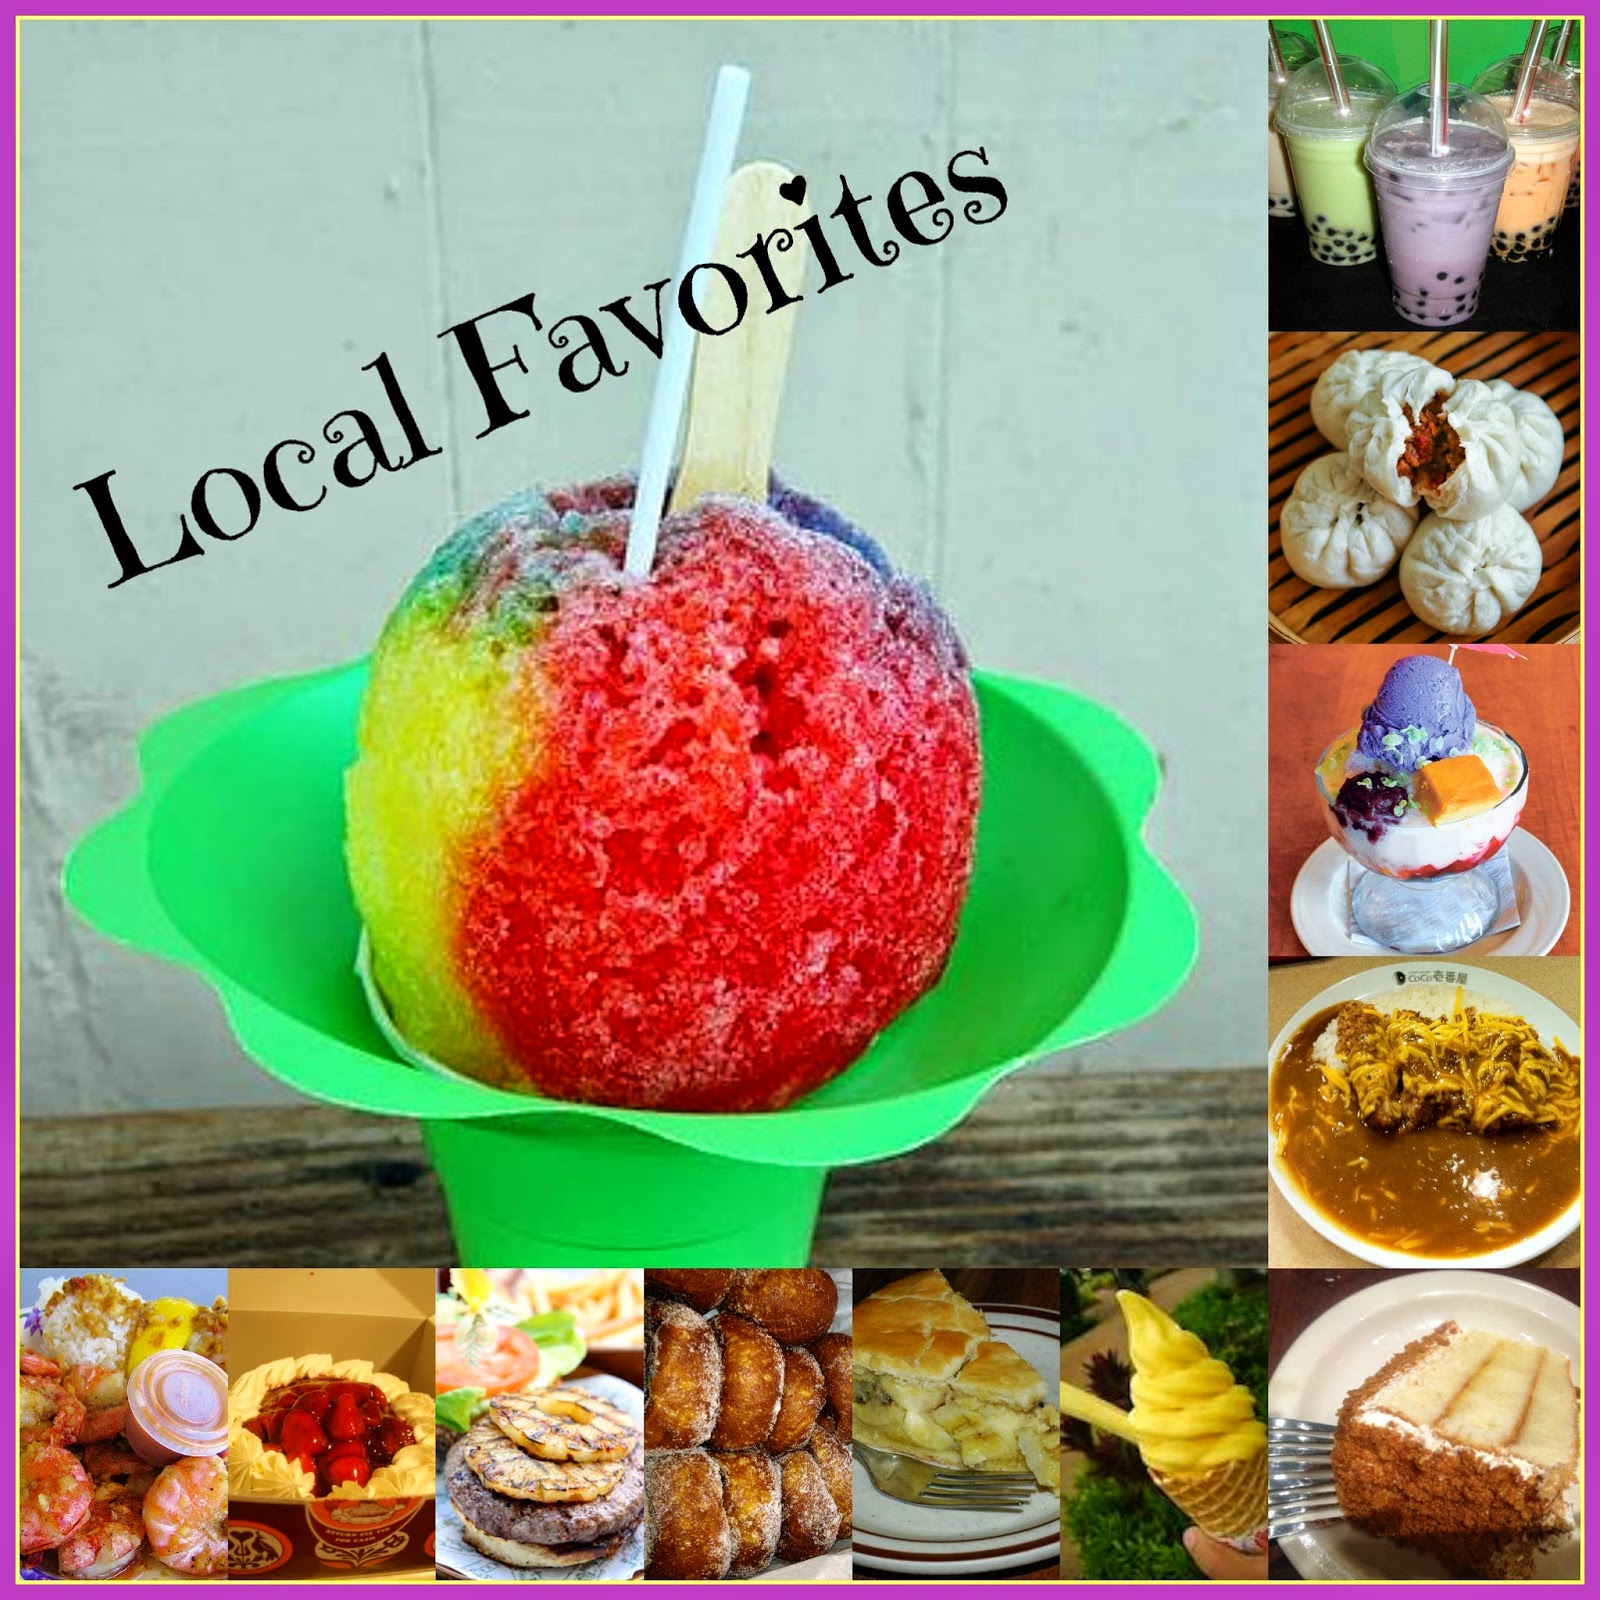 Local Food